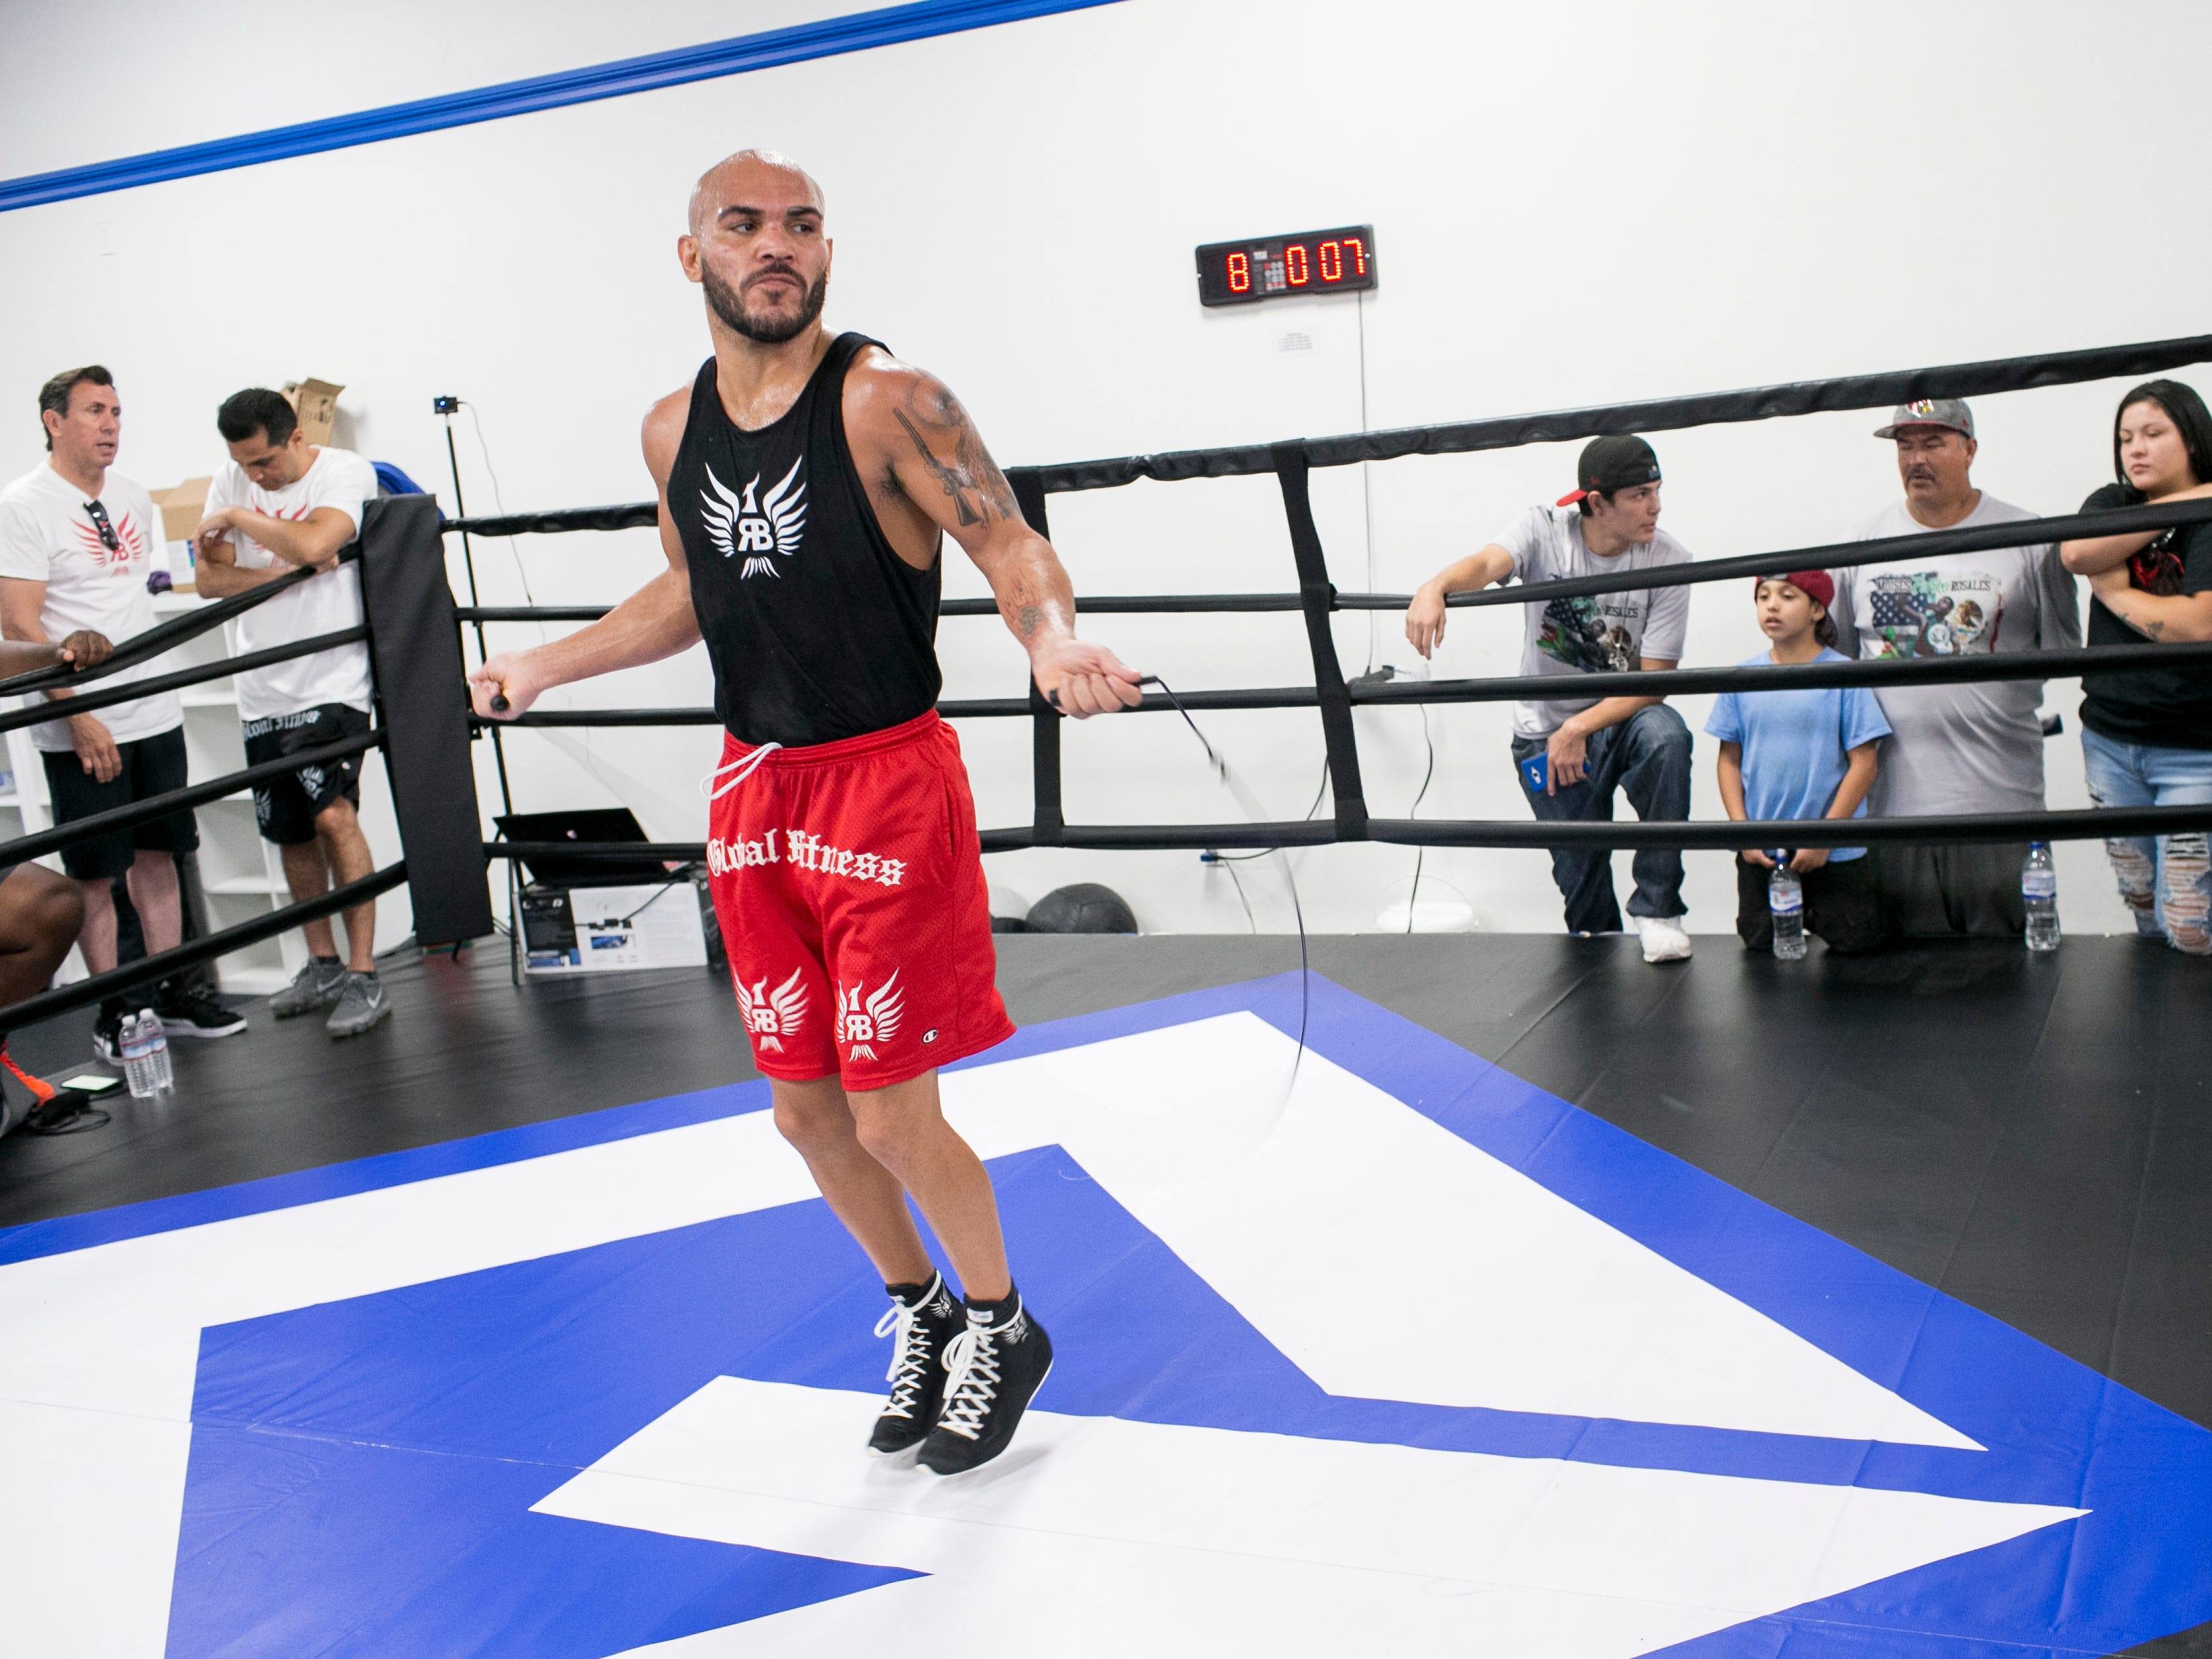 Ray Beltran, the World Boxing Organization World Lightweight champion, jumps rope at Gent's Boxing Club in Glendale, Ariz. on Sat. Aug 4, 2018.